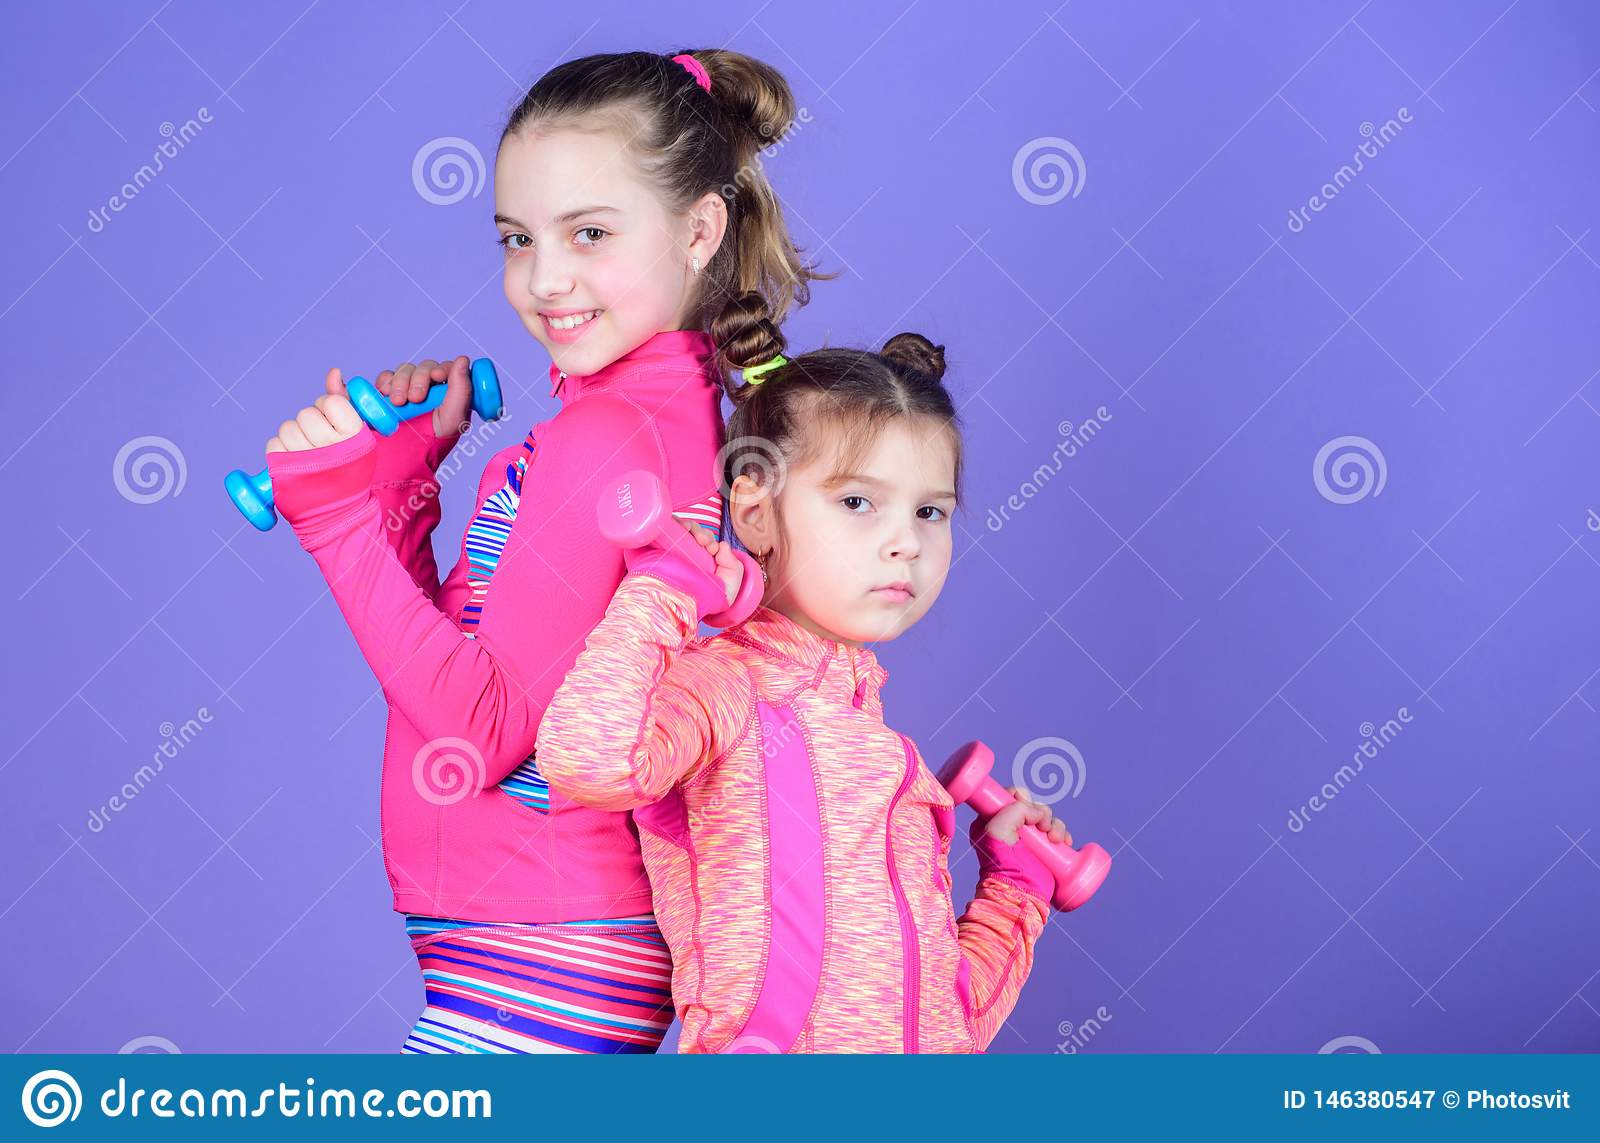 Sport exercises for kids. Healthy upbringing. Sporty babies. Following her sister. Girls cute kid exercising with